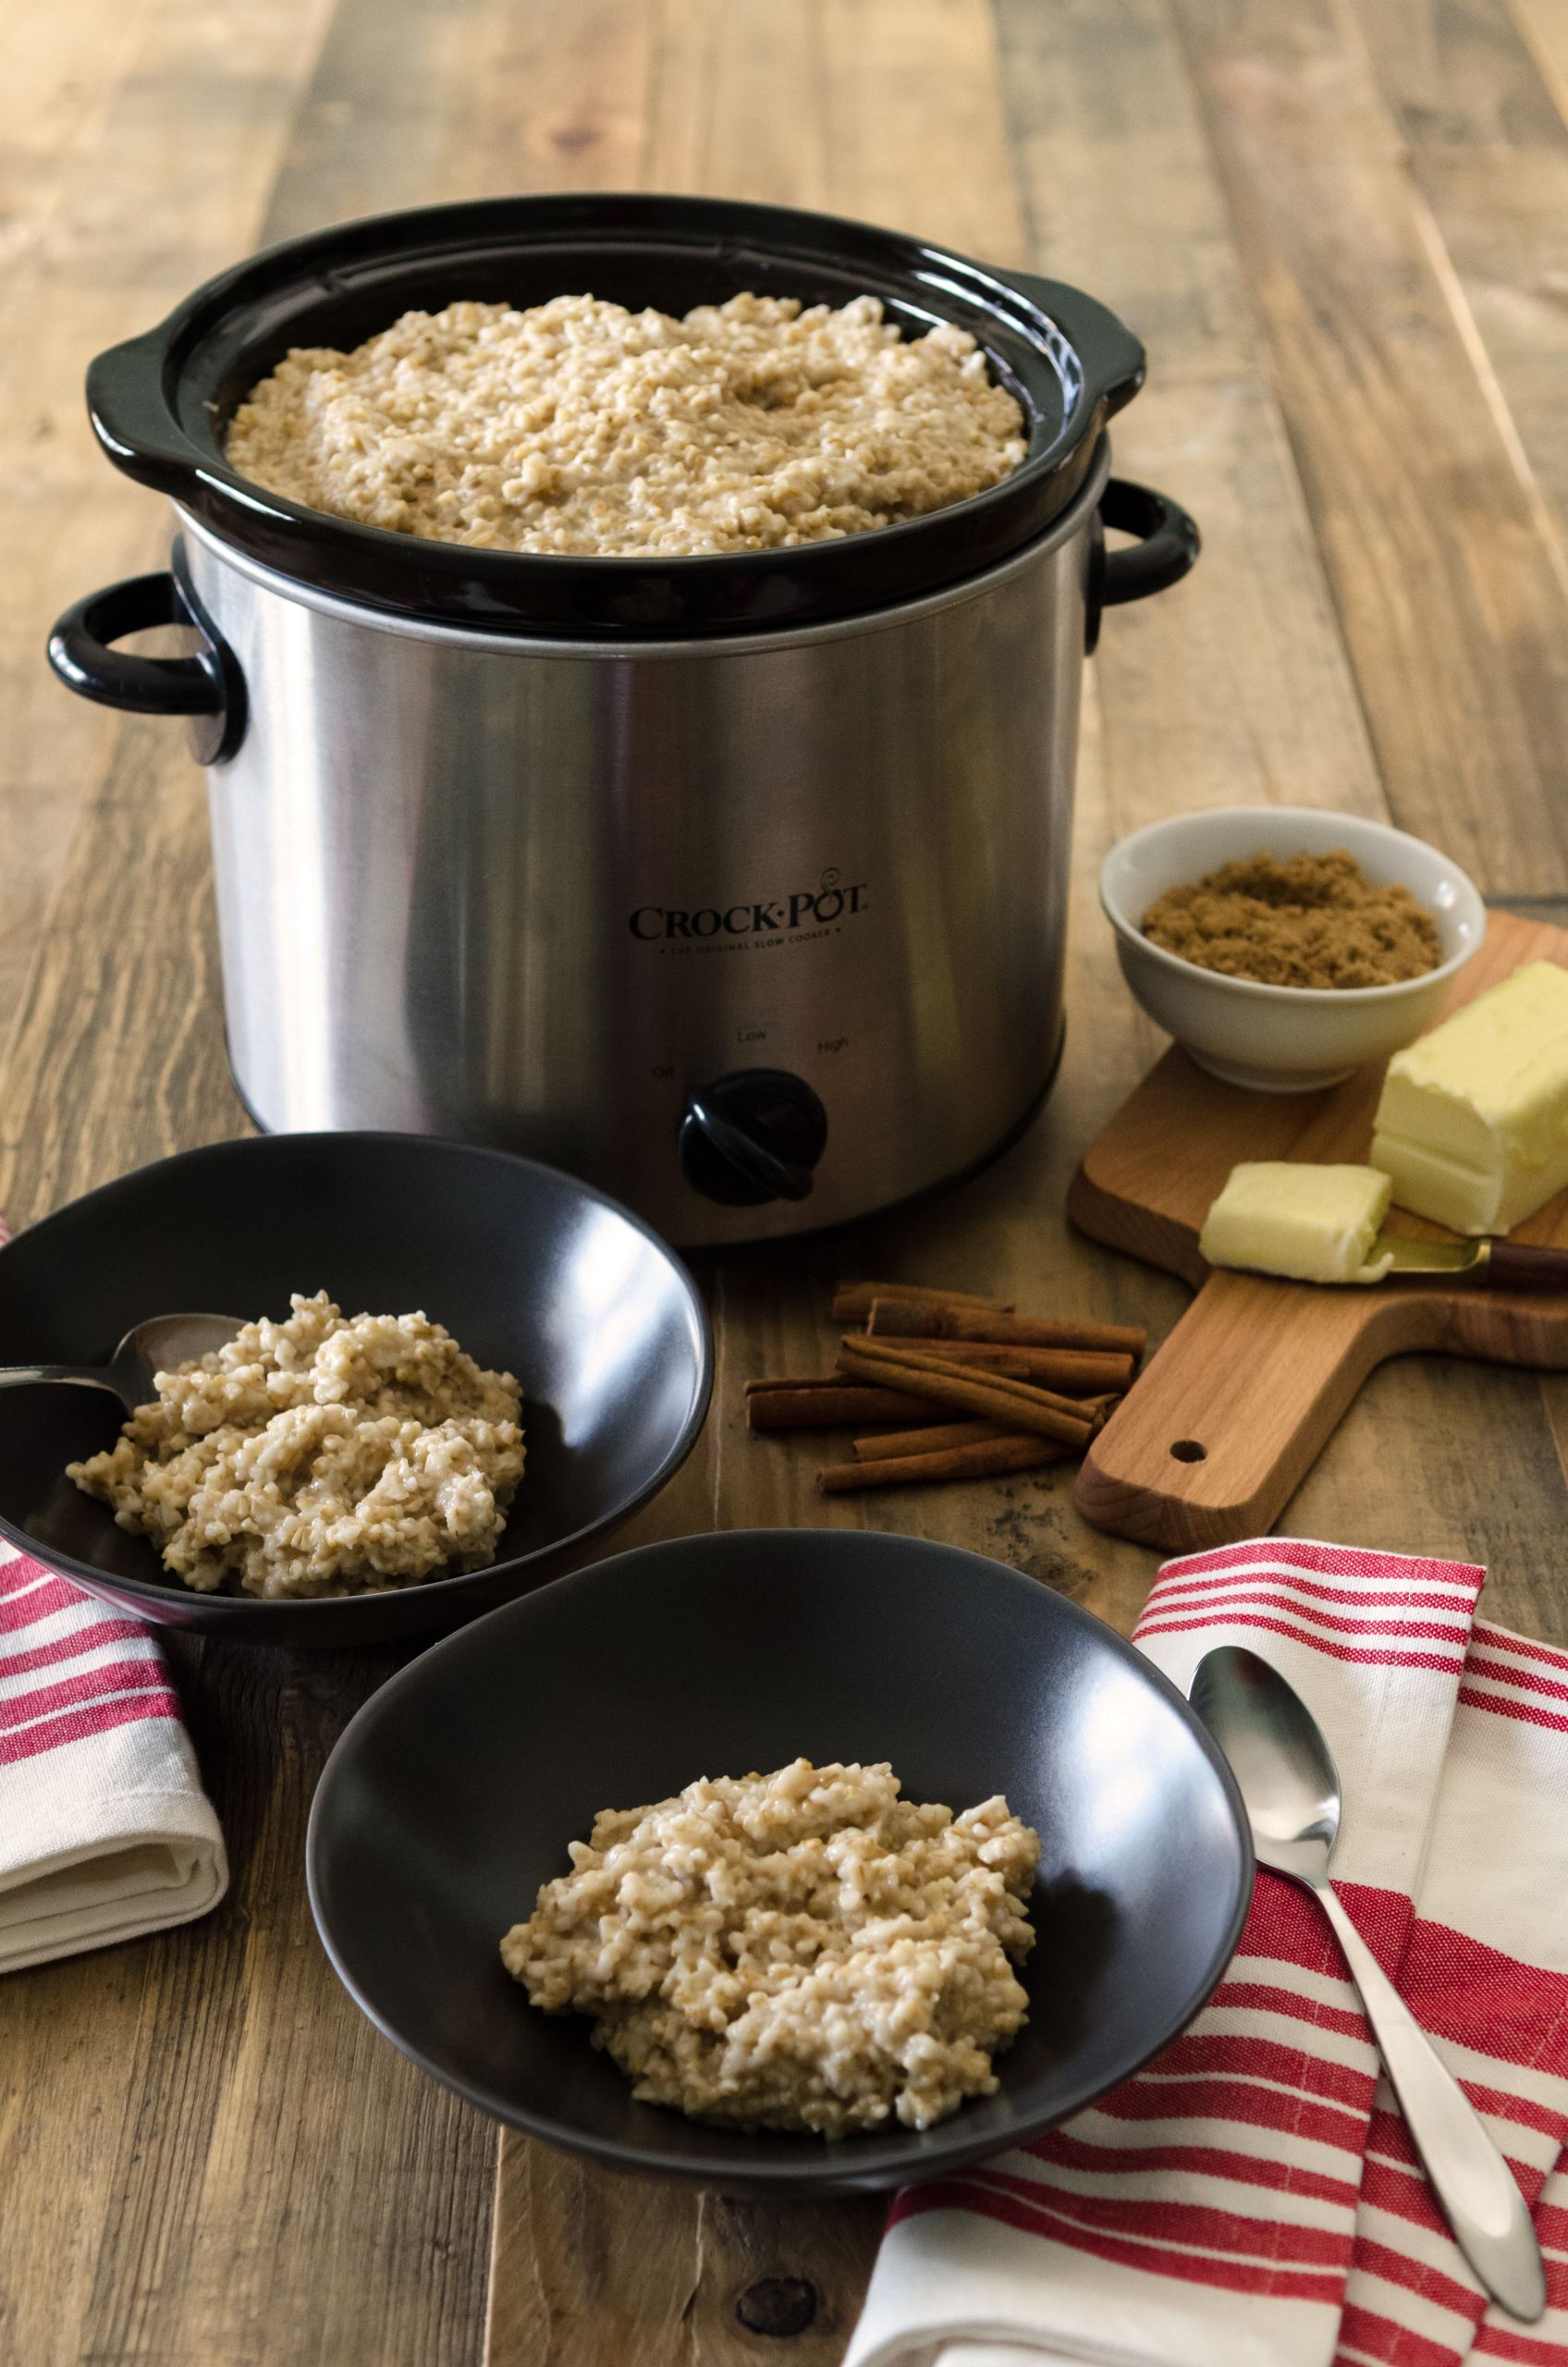 Steel Cuts Oats In Slow Cooker  How to Make Steel Cut Oats in the Slow Cooker